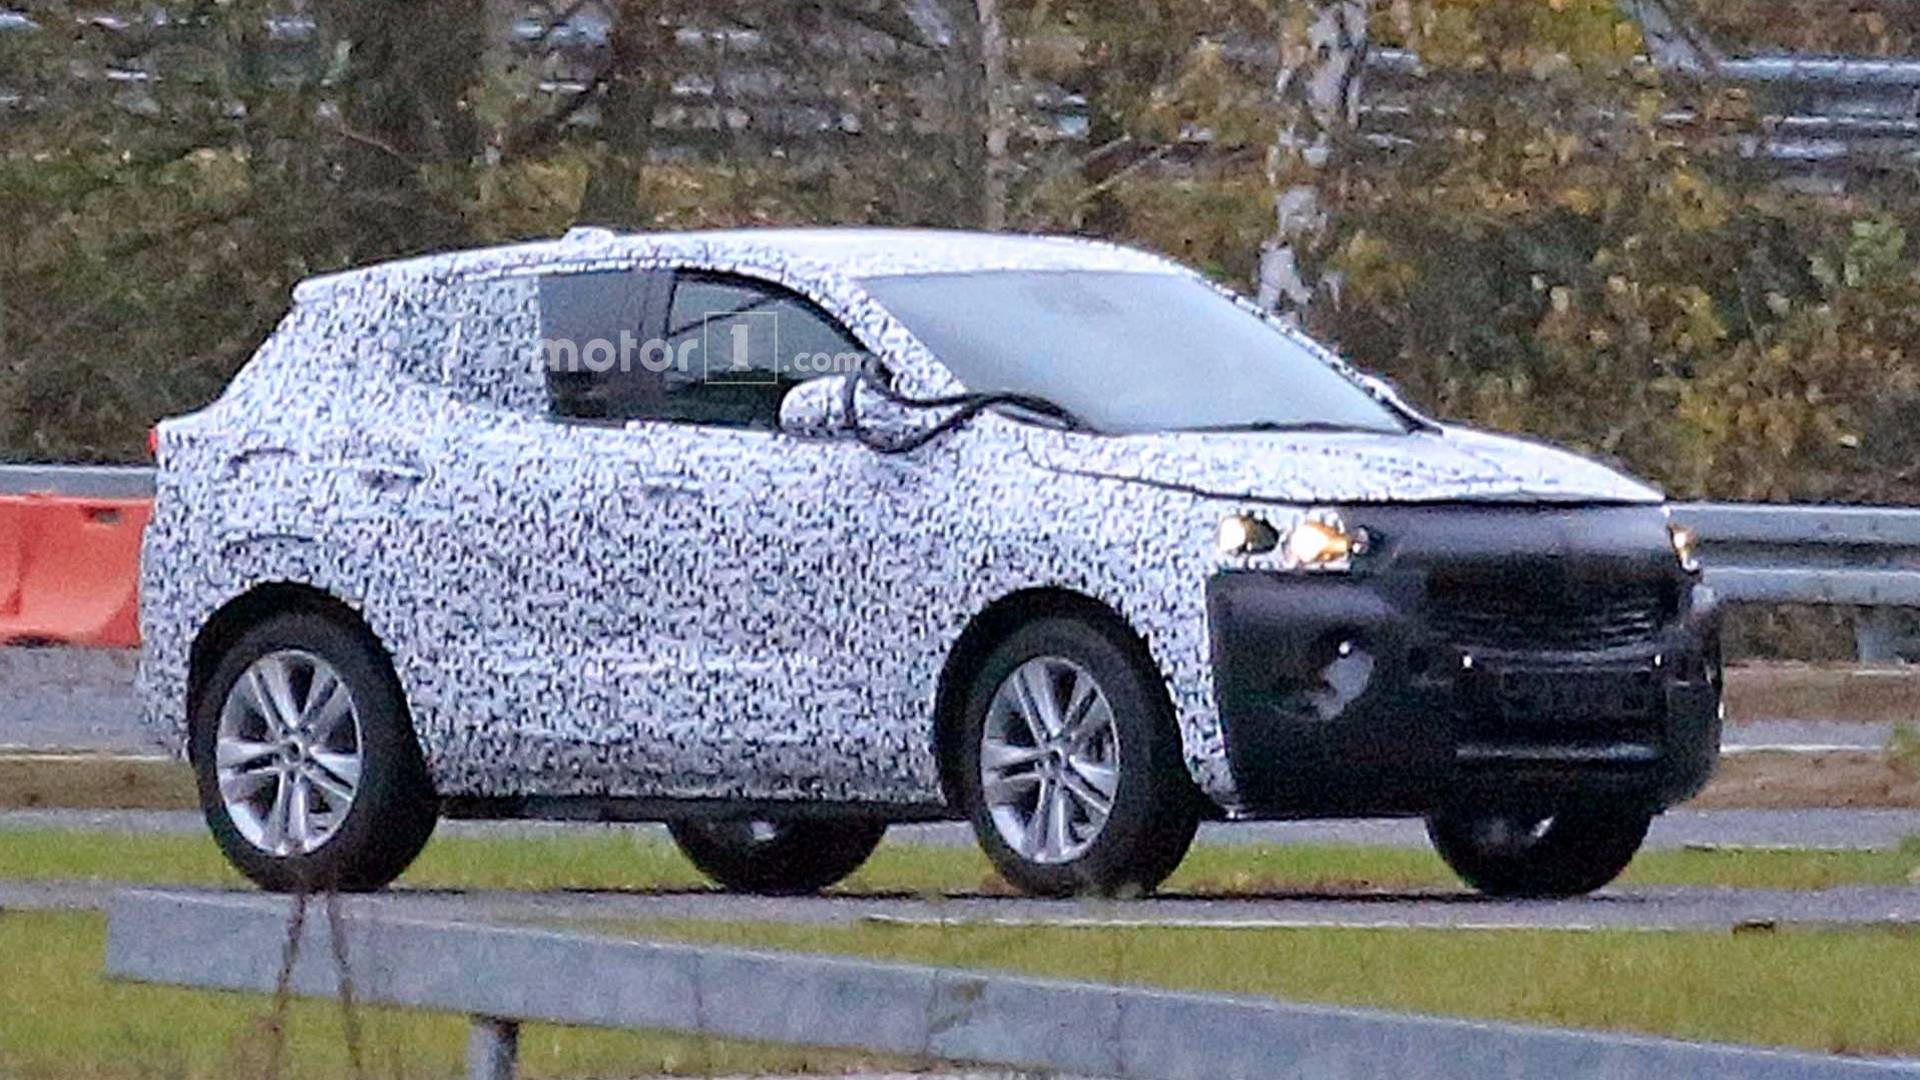 Opel Mokka X Compact Suv Replacement Spied For The First Time